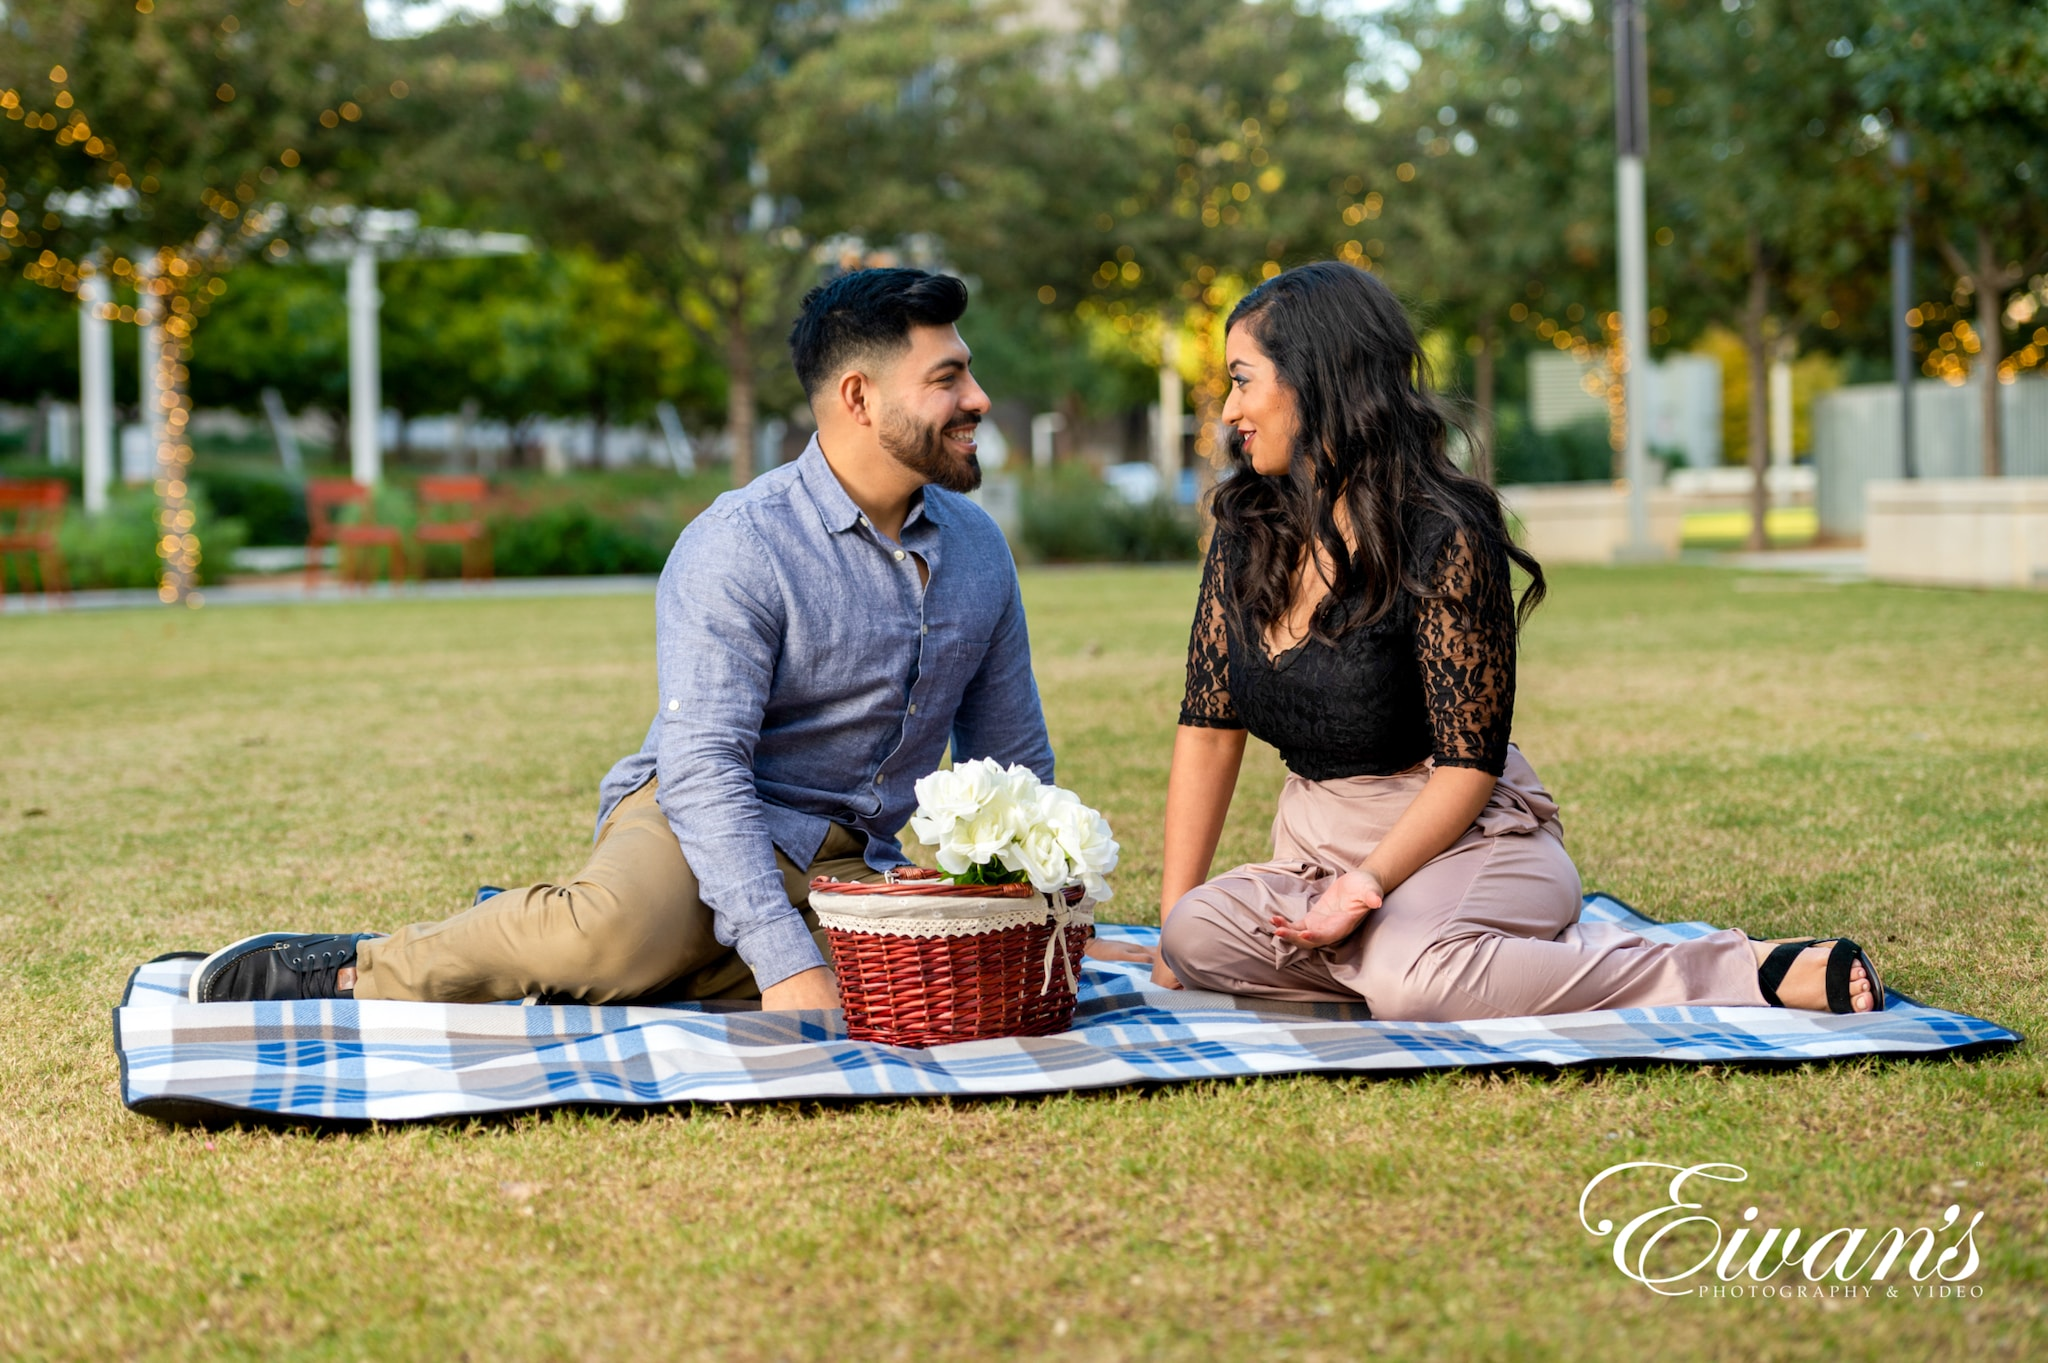 image of an engaged couple having a picnic